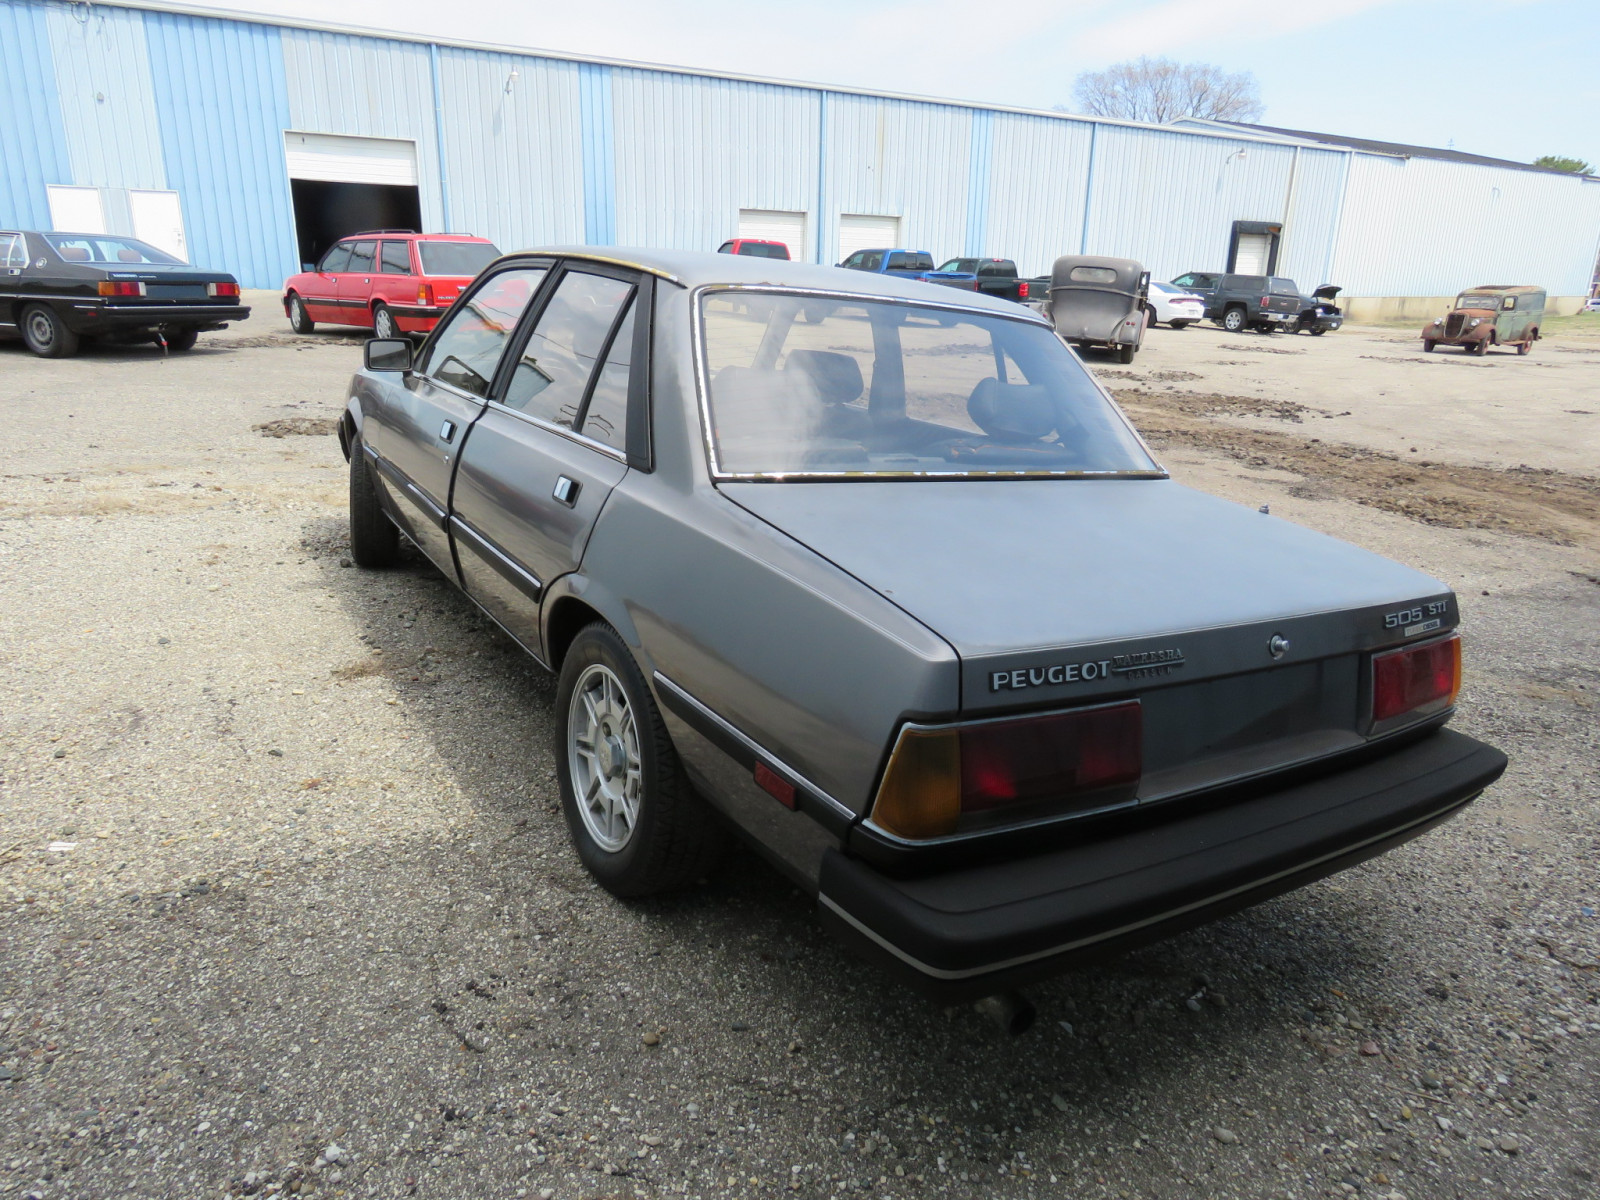 1984 Peugeot 505 STI Turbo D Sedan - Image 5